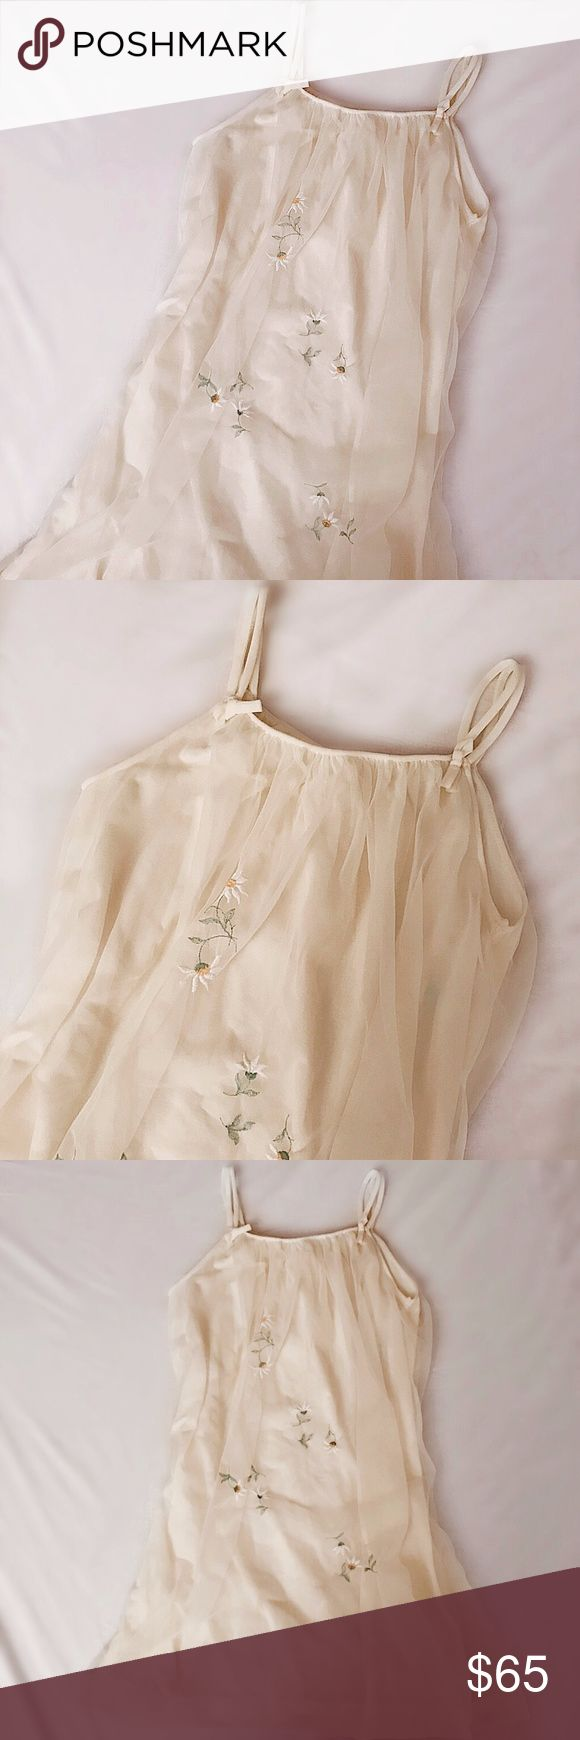 """1970s """"Pale Santon"""" Embroidery Slip Pale Santon yellow, gently tufted slip dress featuring delicate bow-detailed double straps and daisy embroidery throughout. From the 1970s, kept in brand new condition. Pair with some slides or an ankle boot. Fits like a size S-M, 33""""L and 18""""pit to pit. Retail value $120. -Olivia Cheng Curated Vintage- Vintage Dresses Mini"""